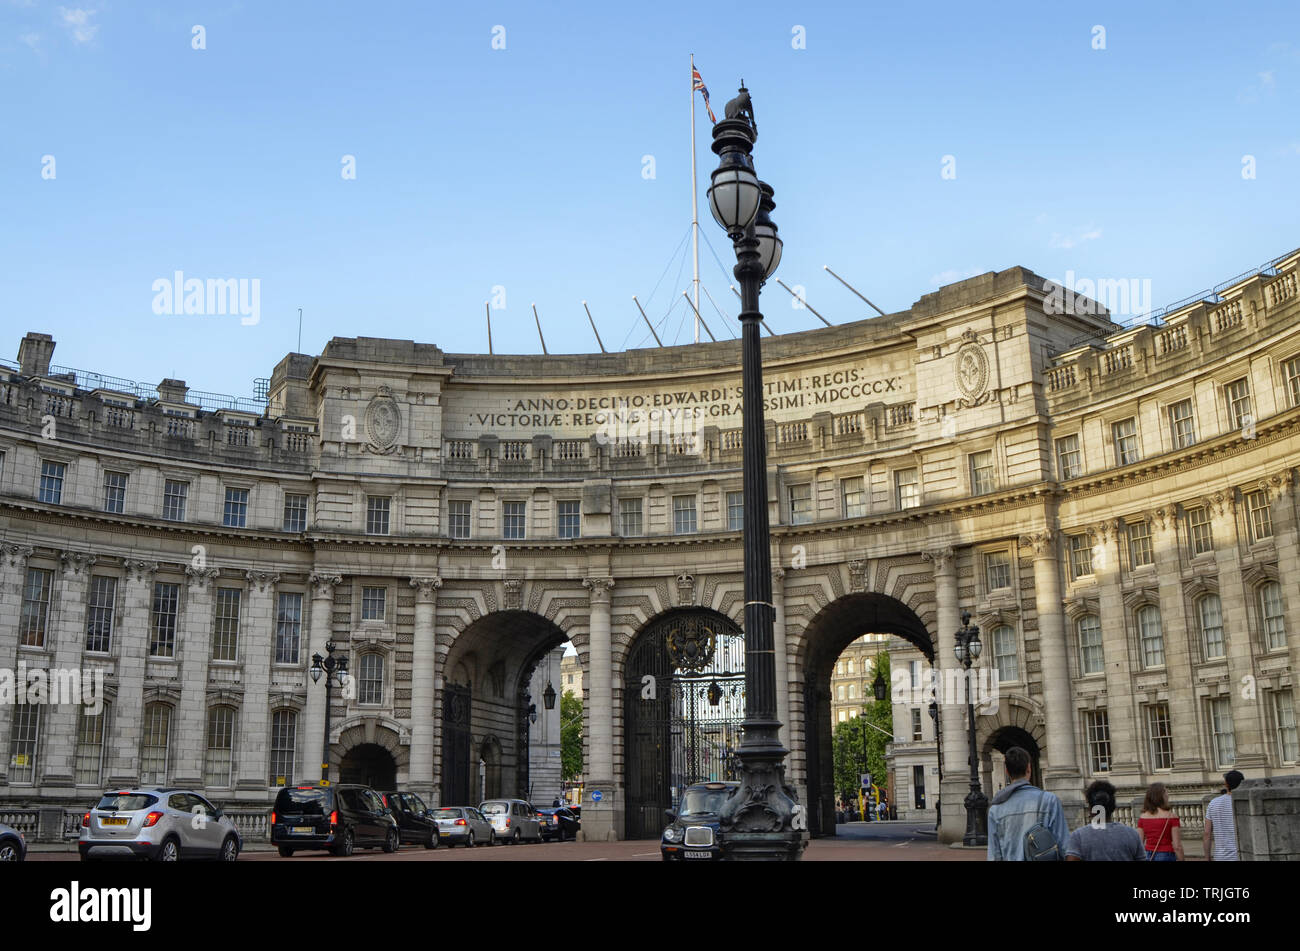 London, United Kingdom, June 2018  Admiralty Arch, the portal at the